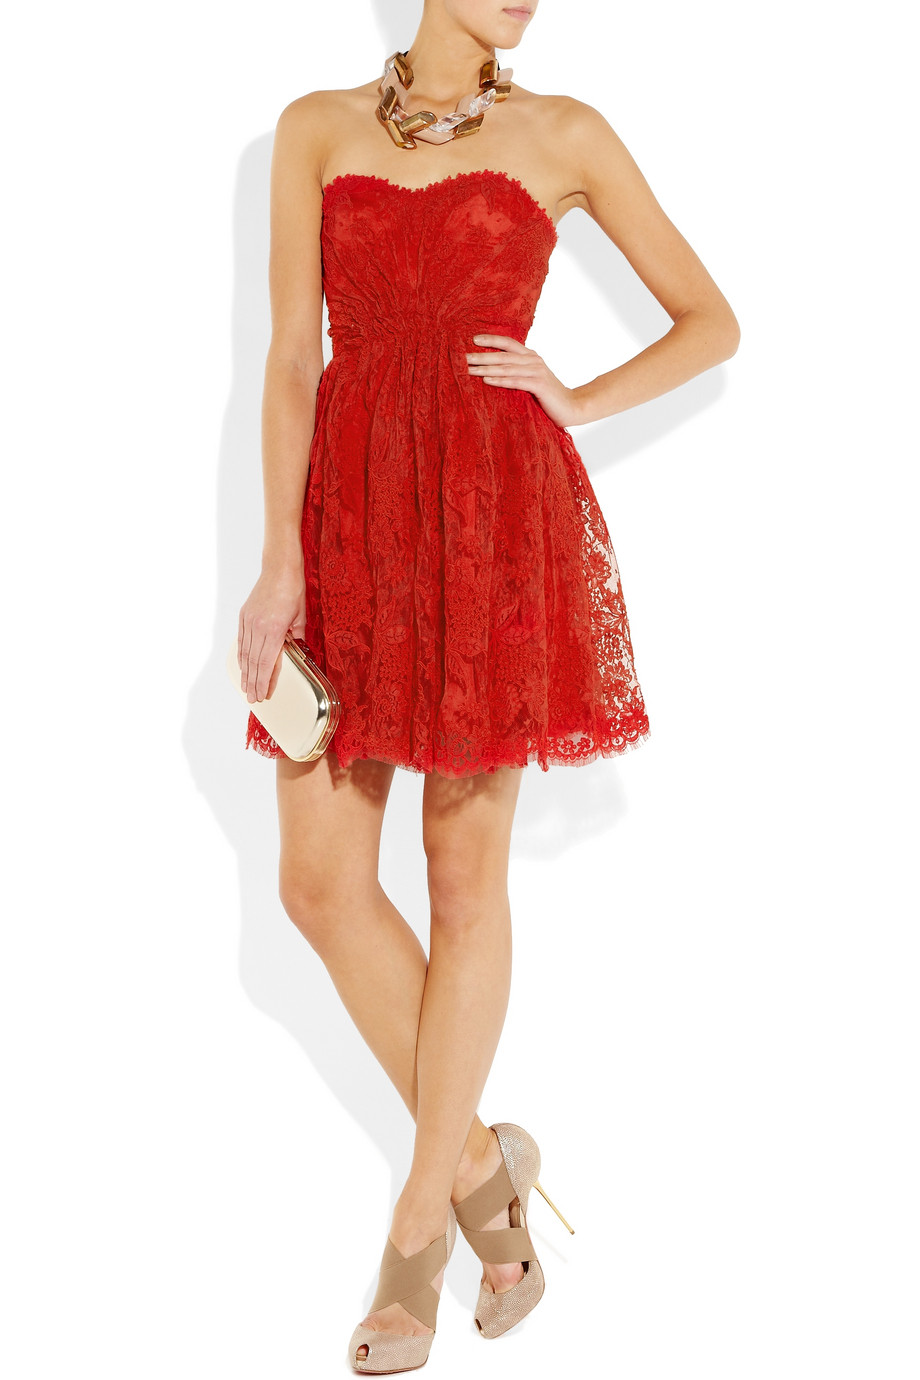 Red Lace Dress | Dressed Up Girl